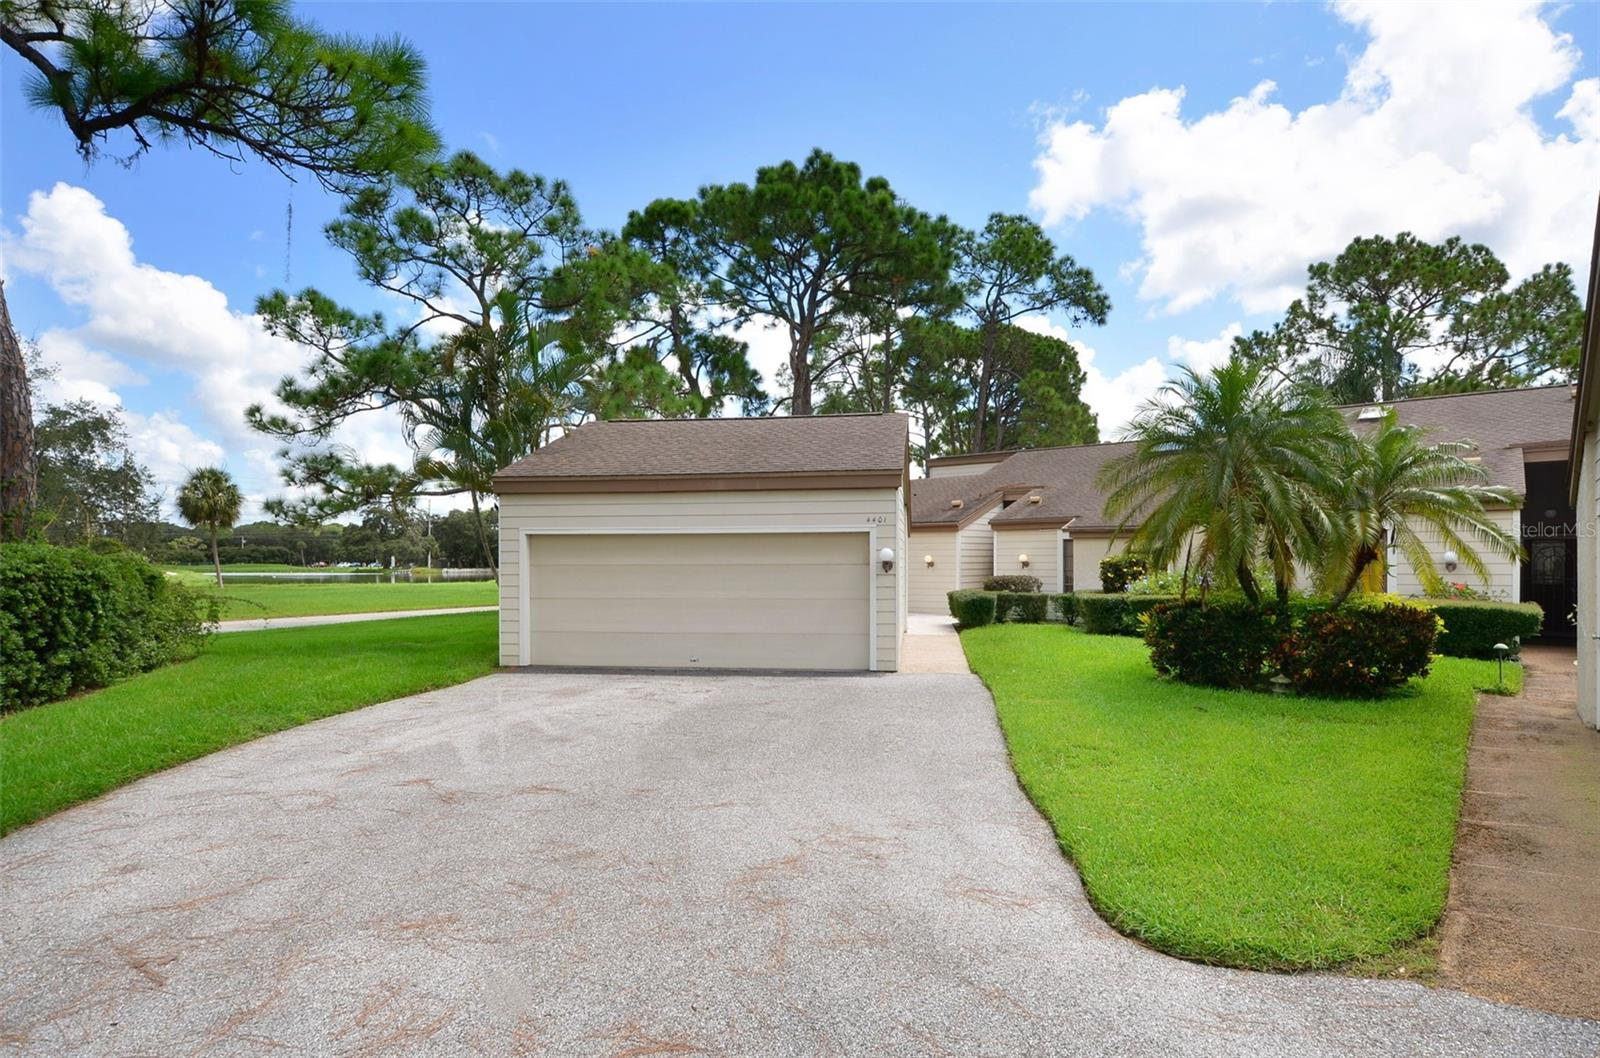 Primary photo of recently sold MLS# T3323962